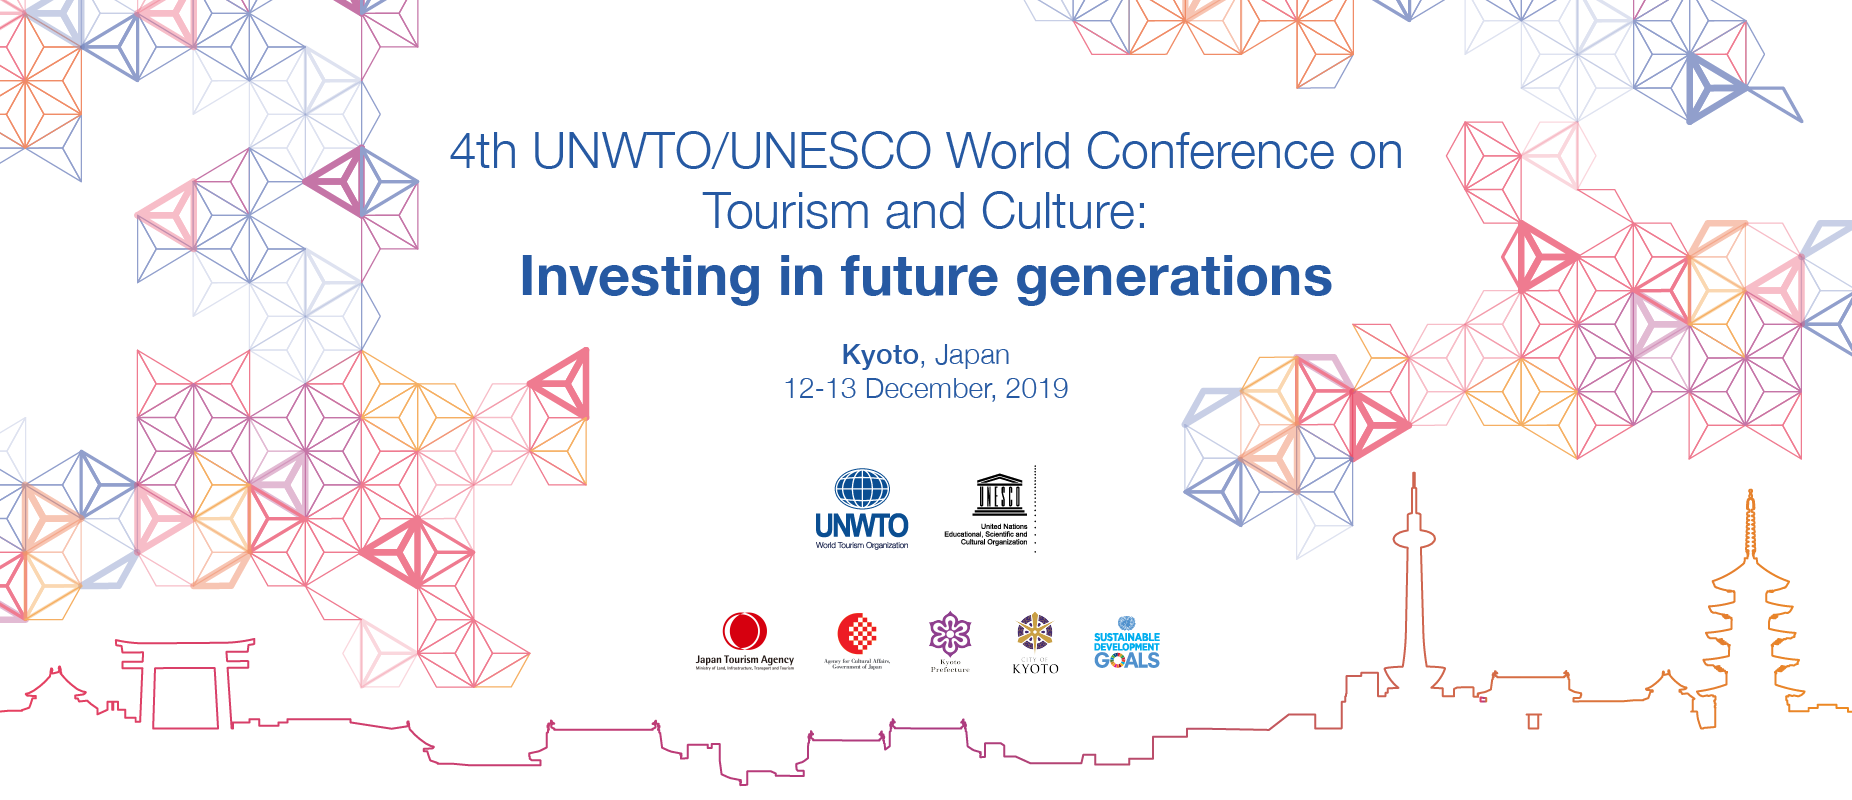 Fourth UNWTO/UNESCO World Conference on Tourism and Culture